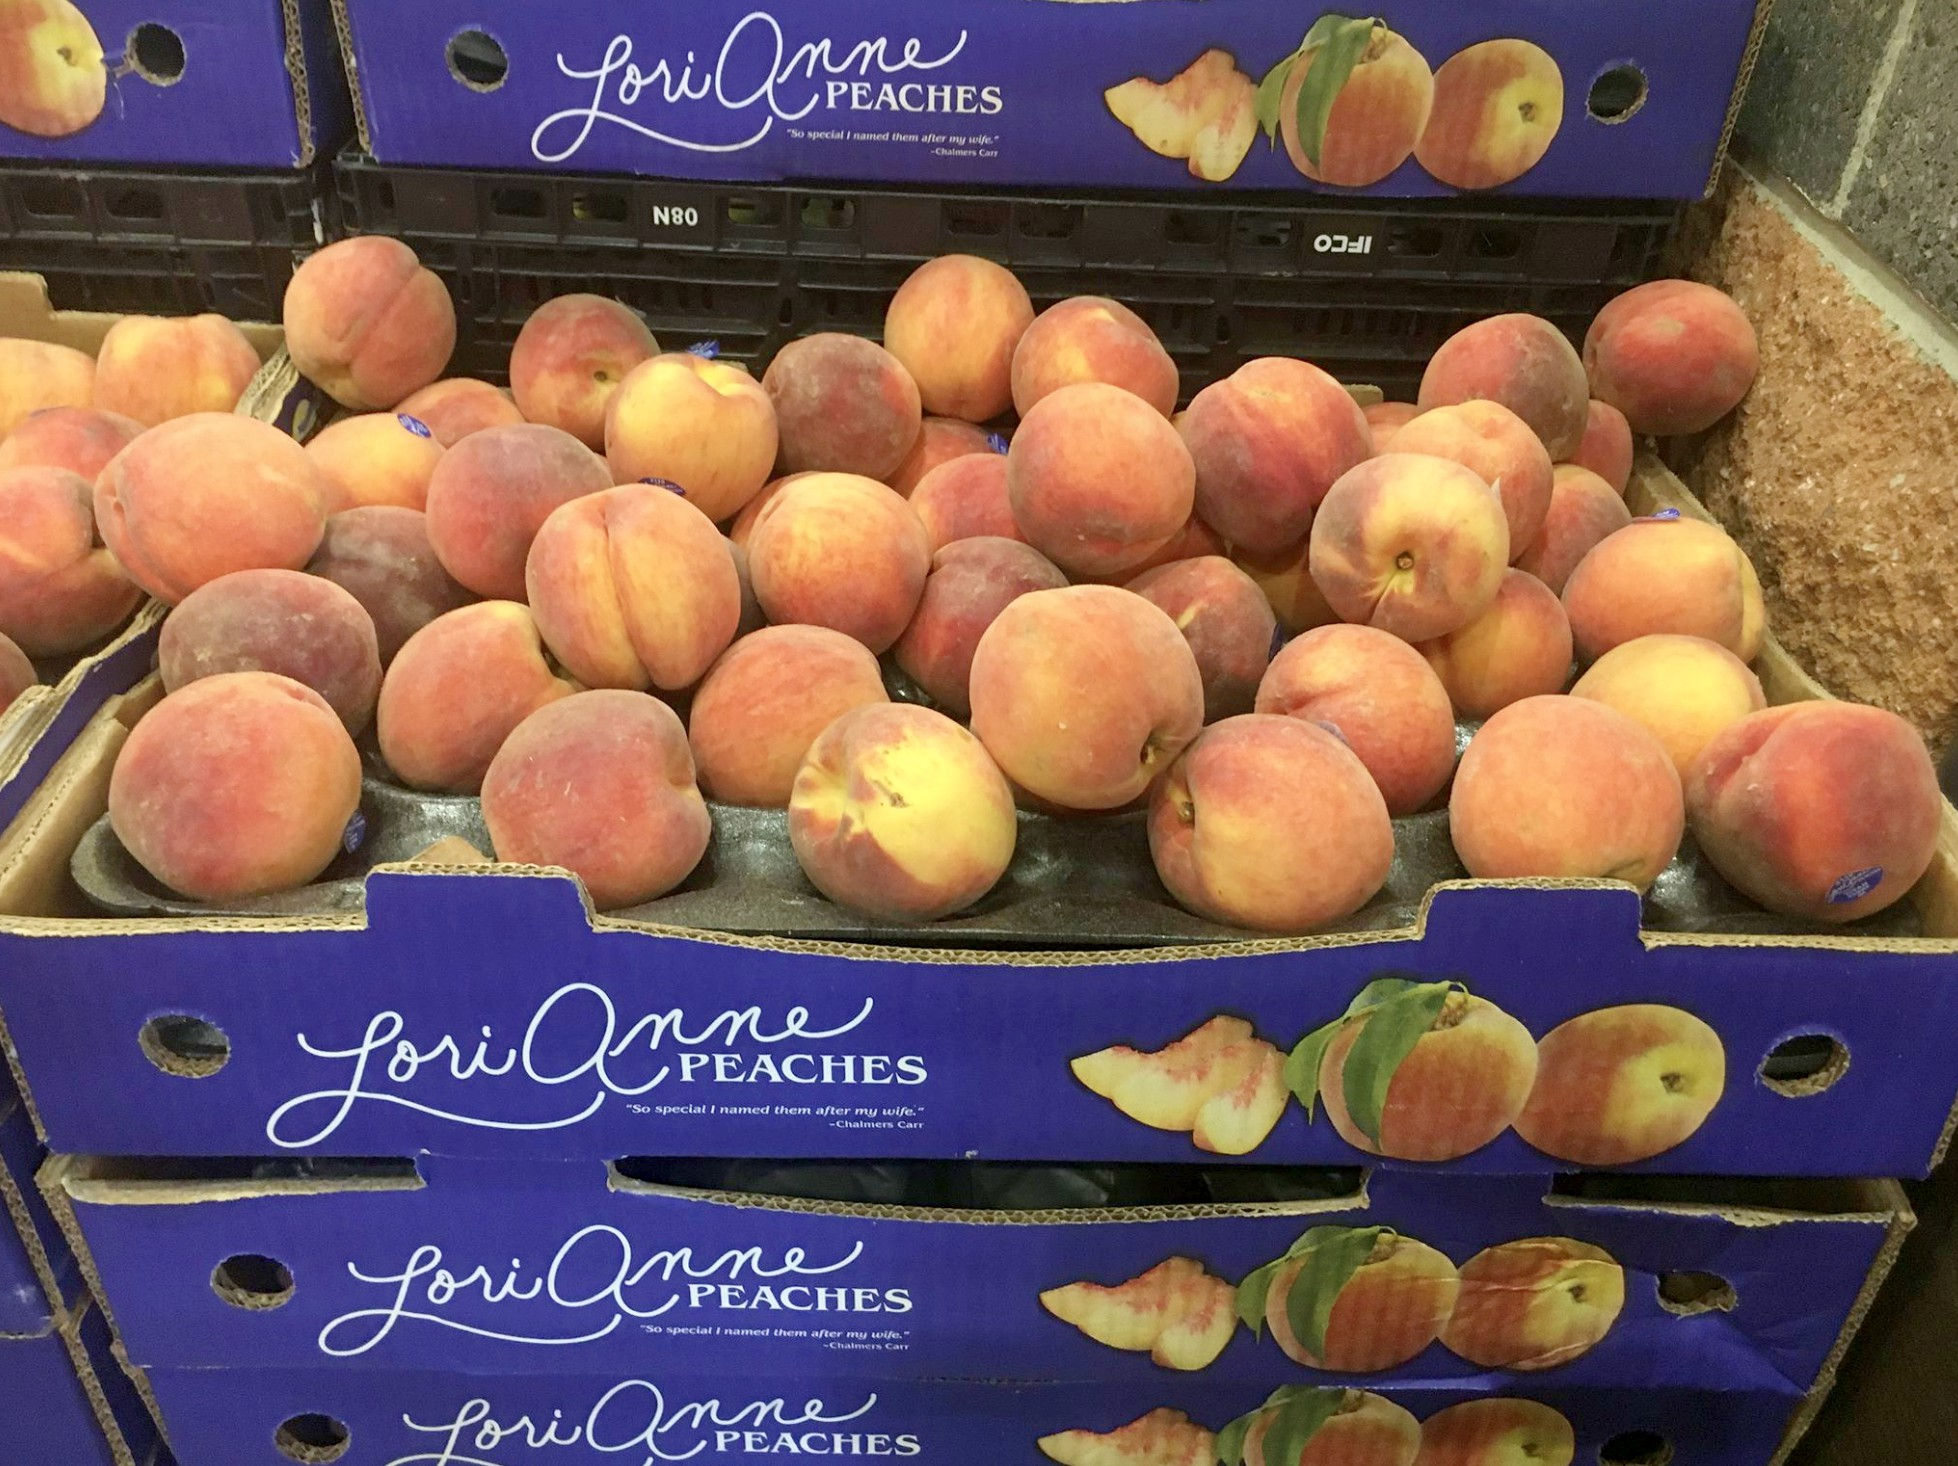 Lori Anne Peaches available only at Wegmans